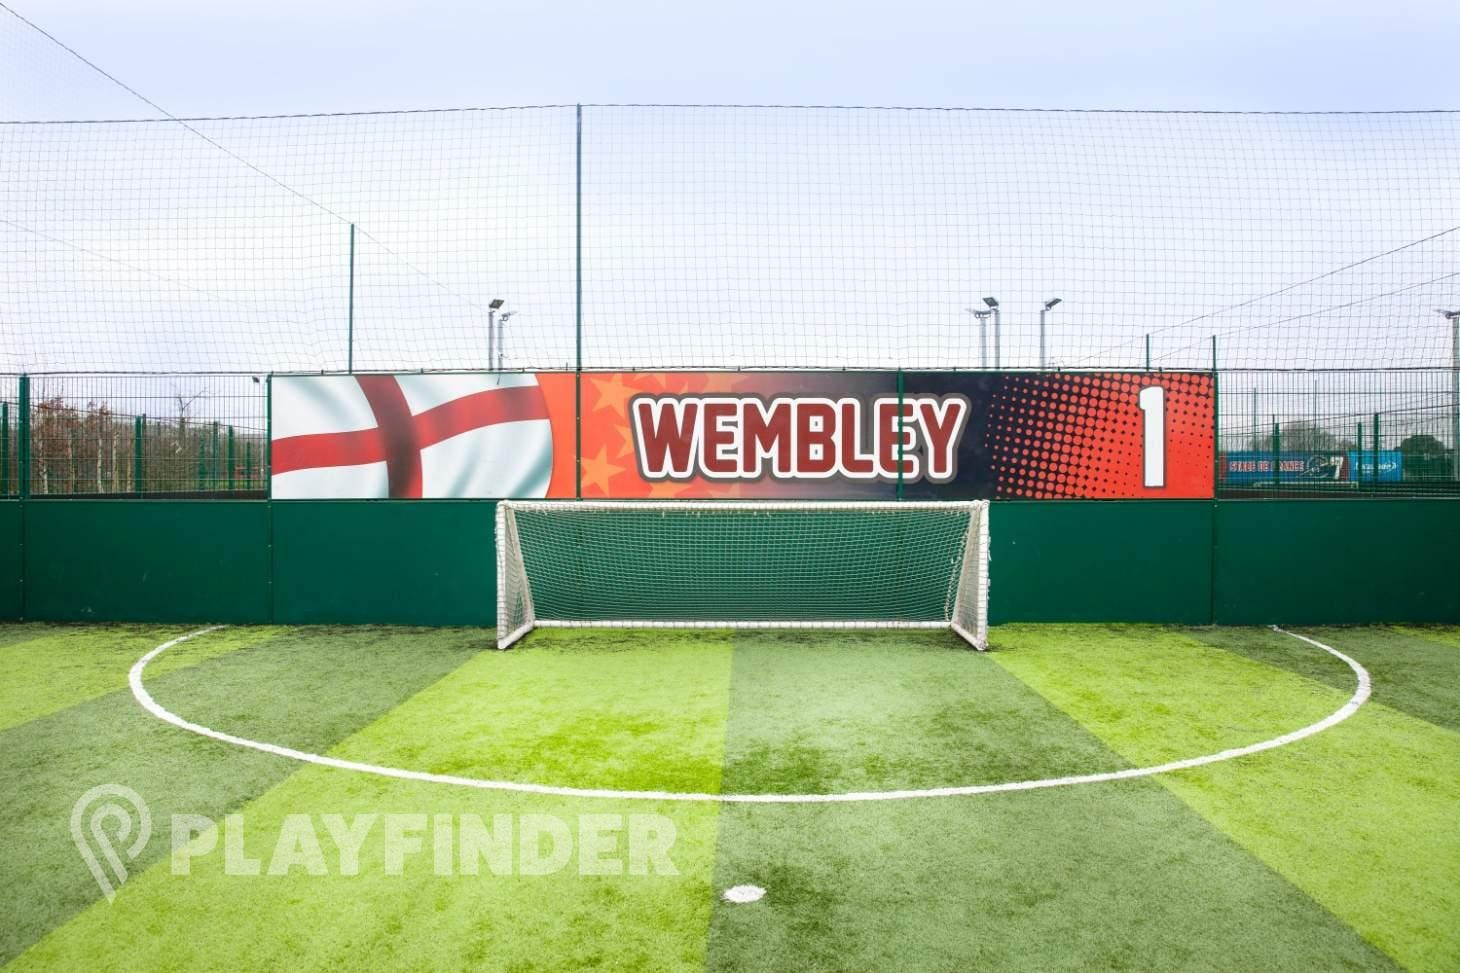 Goals Coventry 5 a side | 3G Astroturf football pitch